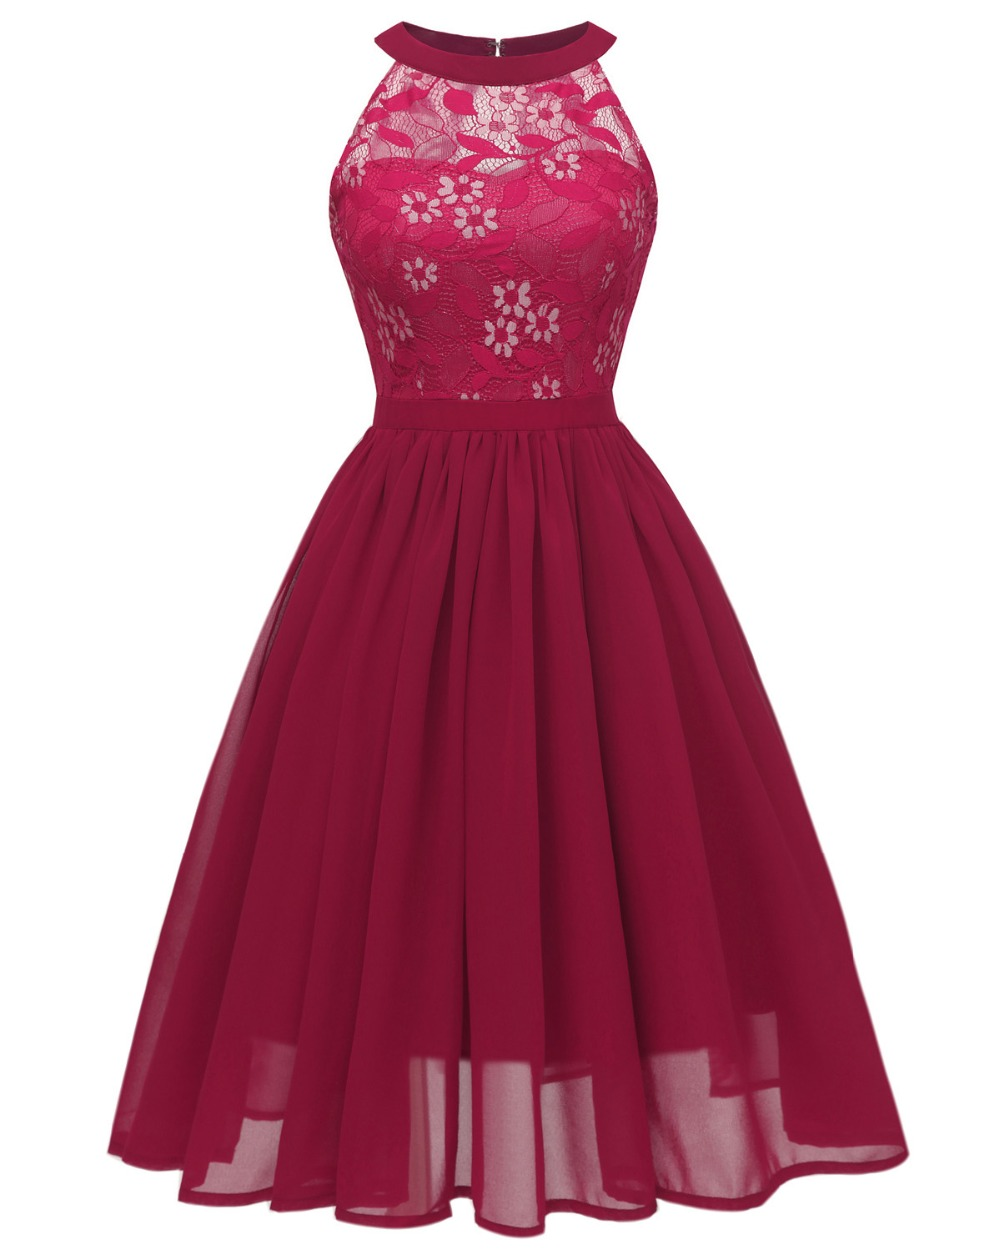 Formal Party Dress 12